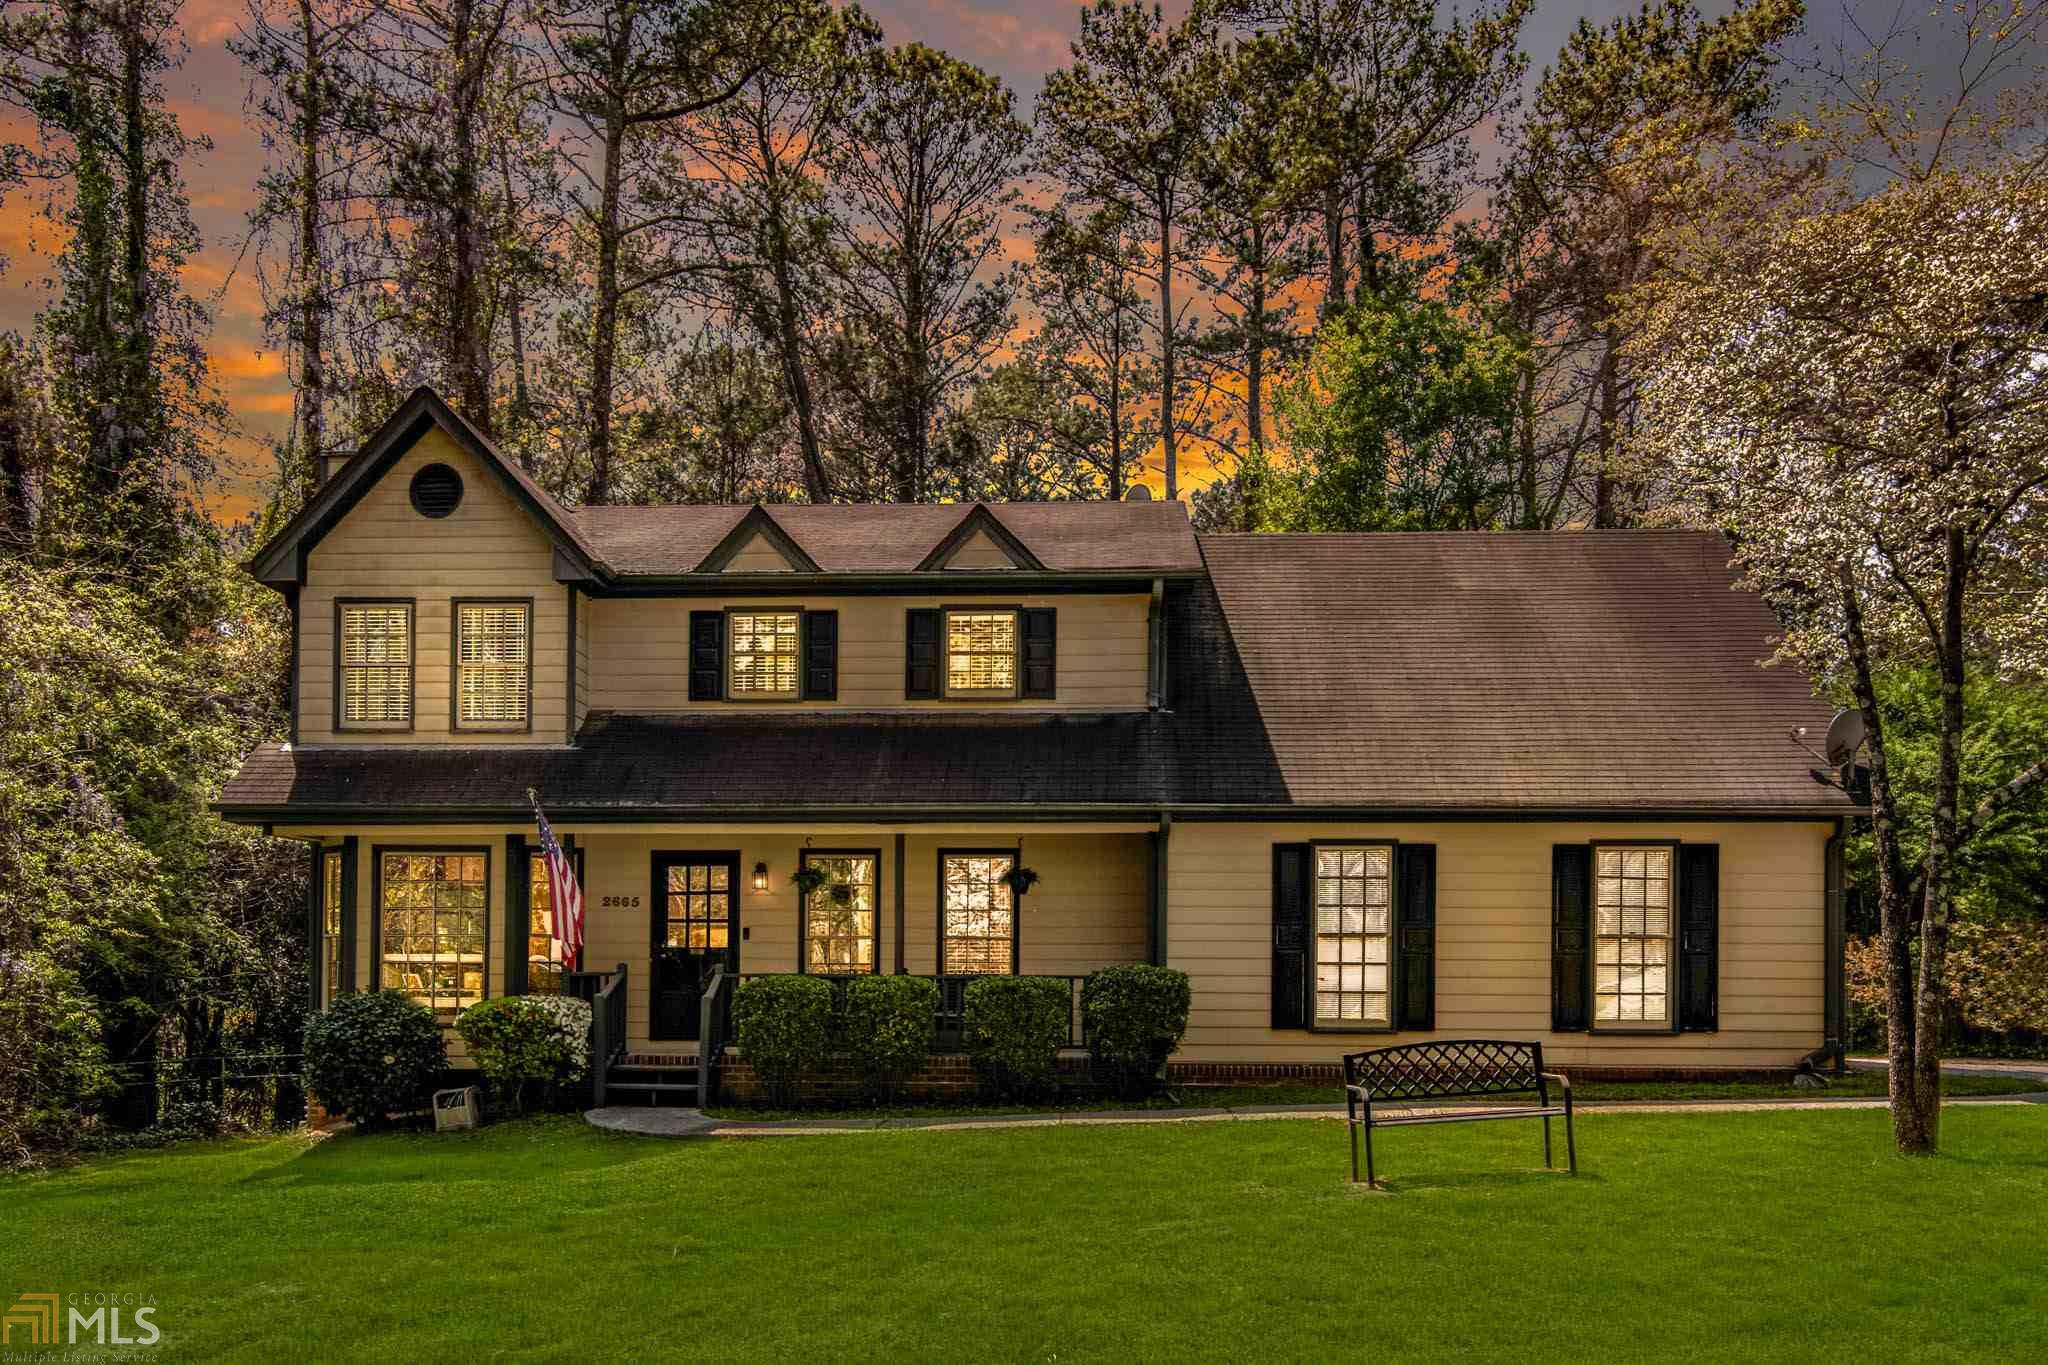 2665 Ross Rd, Snellville, Georgia 30039-7332, 3 Bedrooms Bedrooms, ,3 BathroomsBathrooms,Single Family,For Sale,2665 Ross Rd,2,8958193